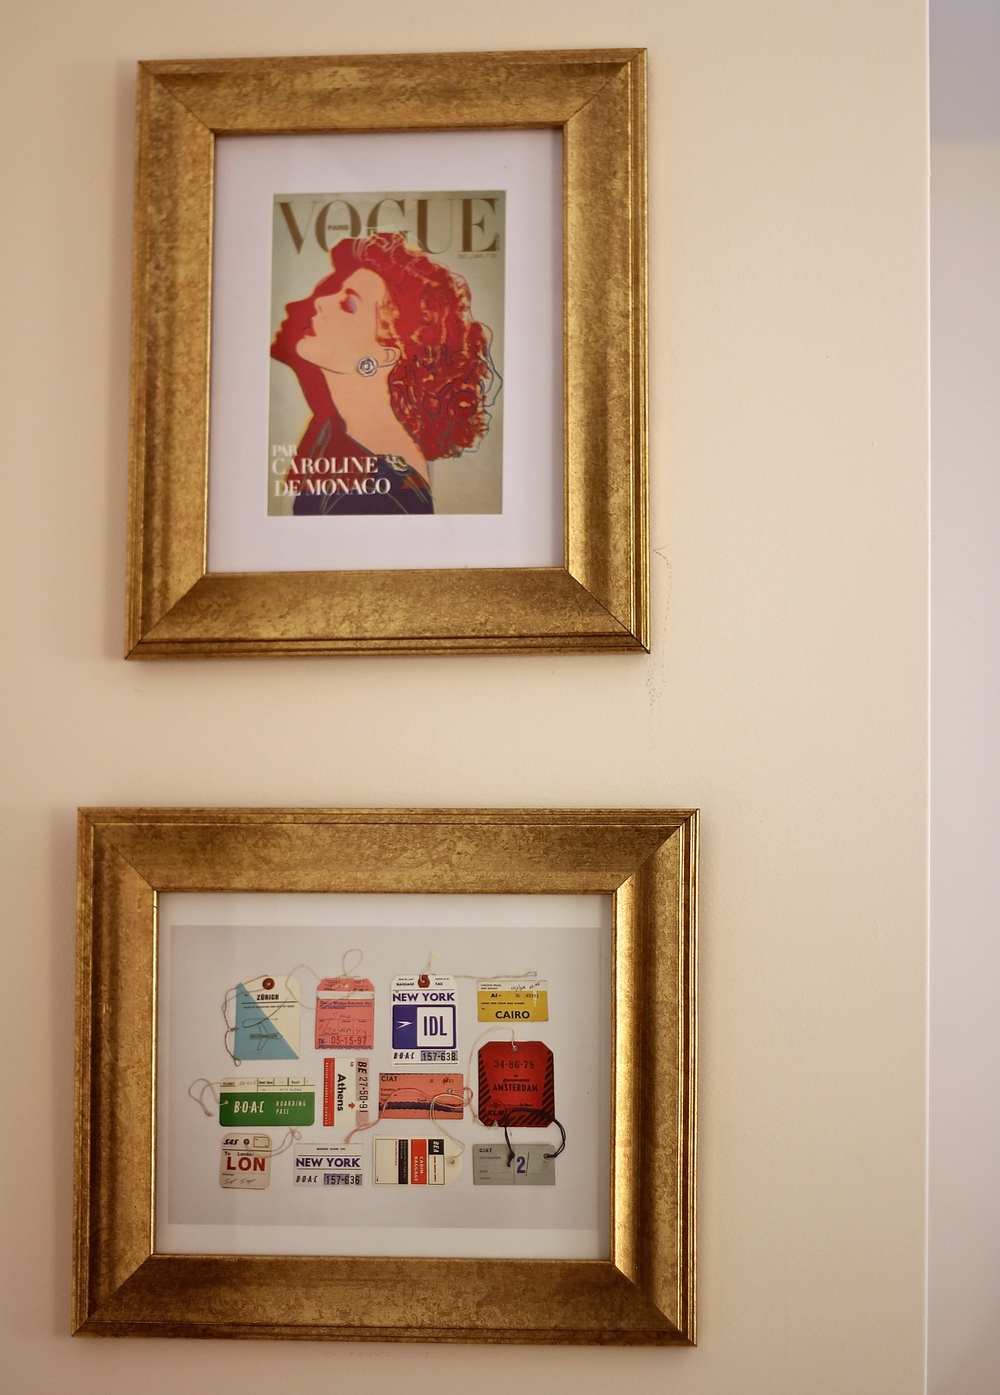 {Some new bargain frames I just put up in my bedroom}